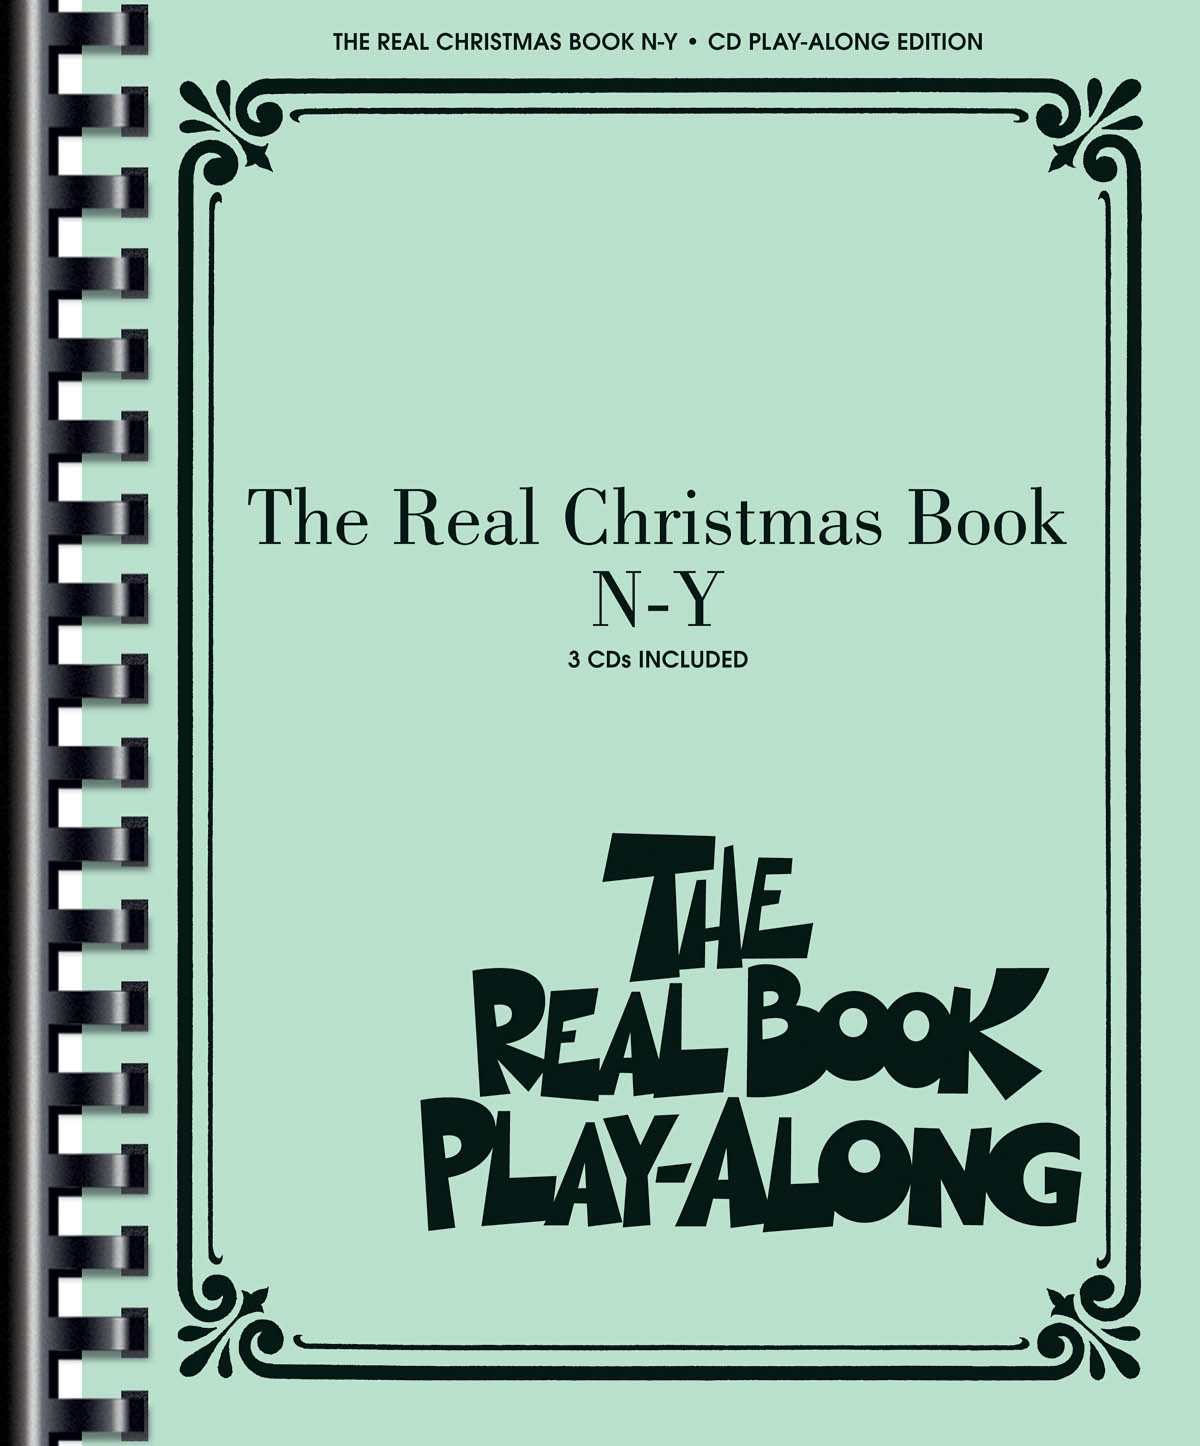 Real Christmas Play-Along N-Y